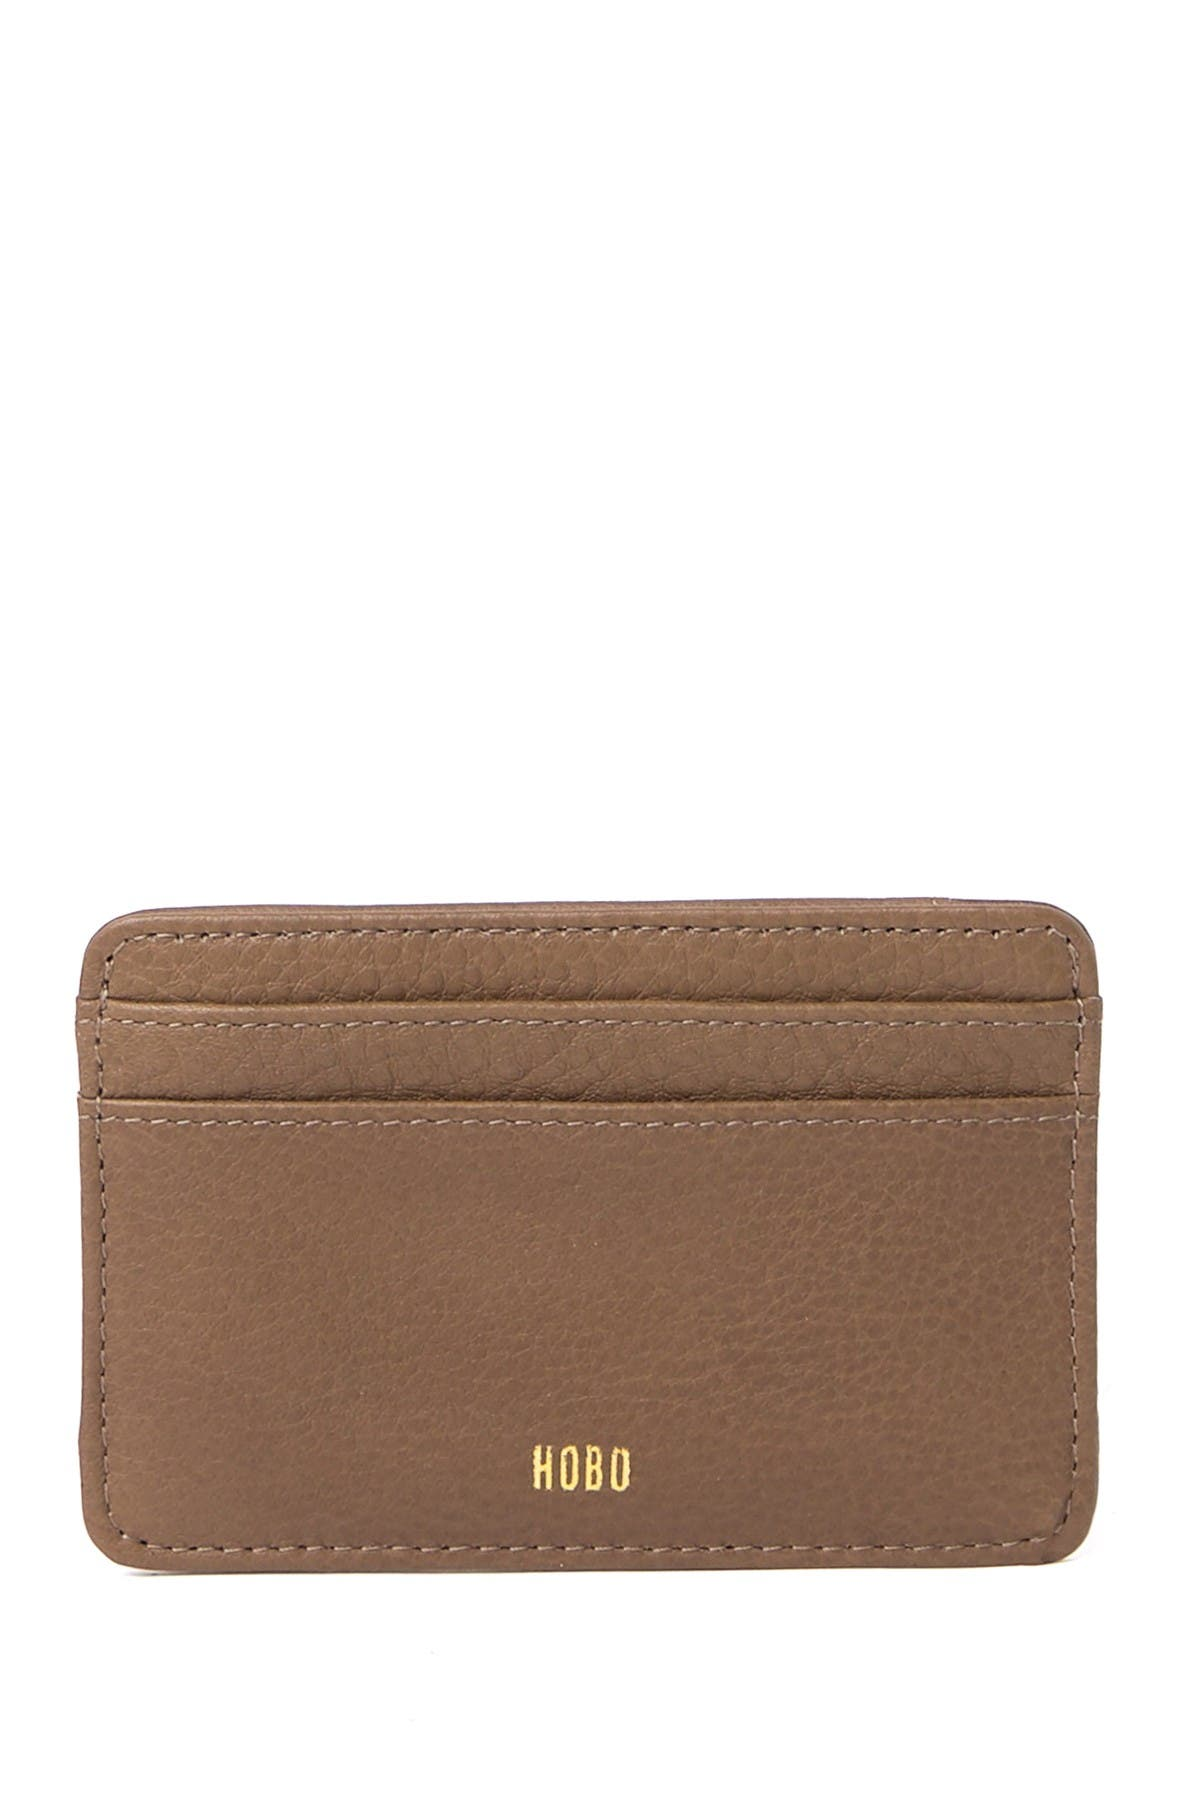 Image of Hobo Works Leather Card Case